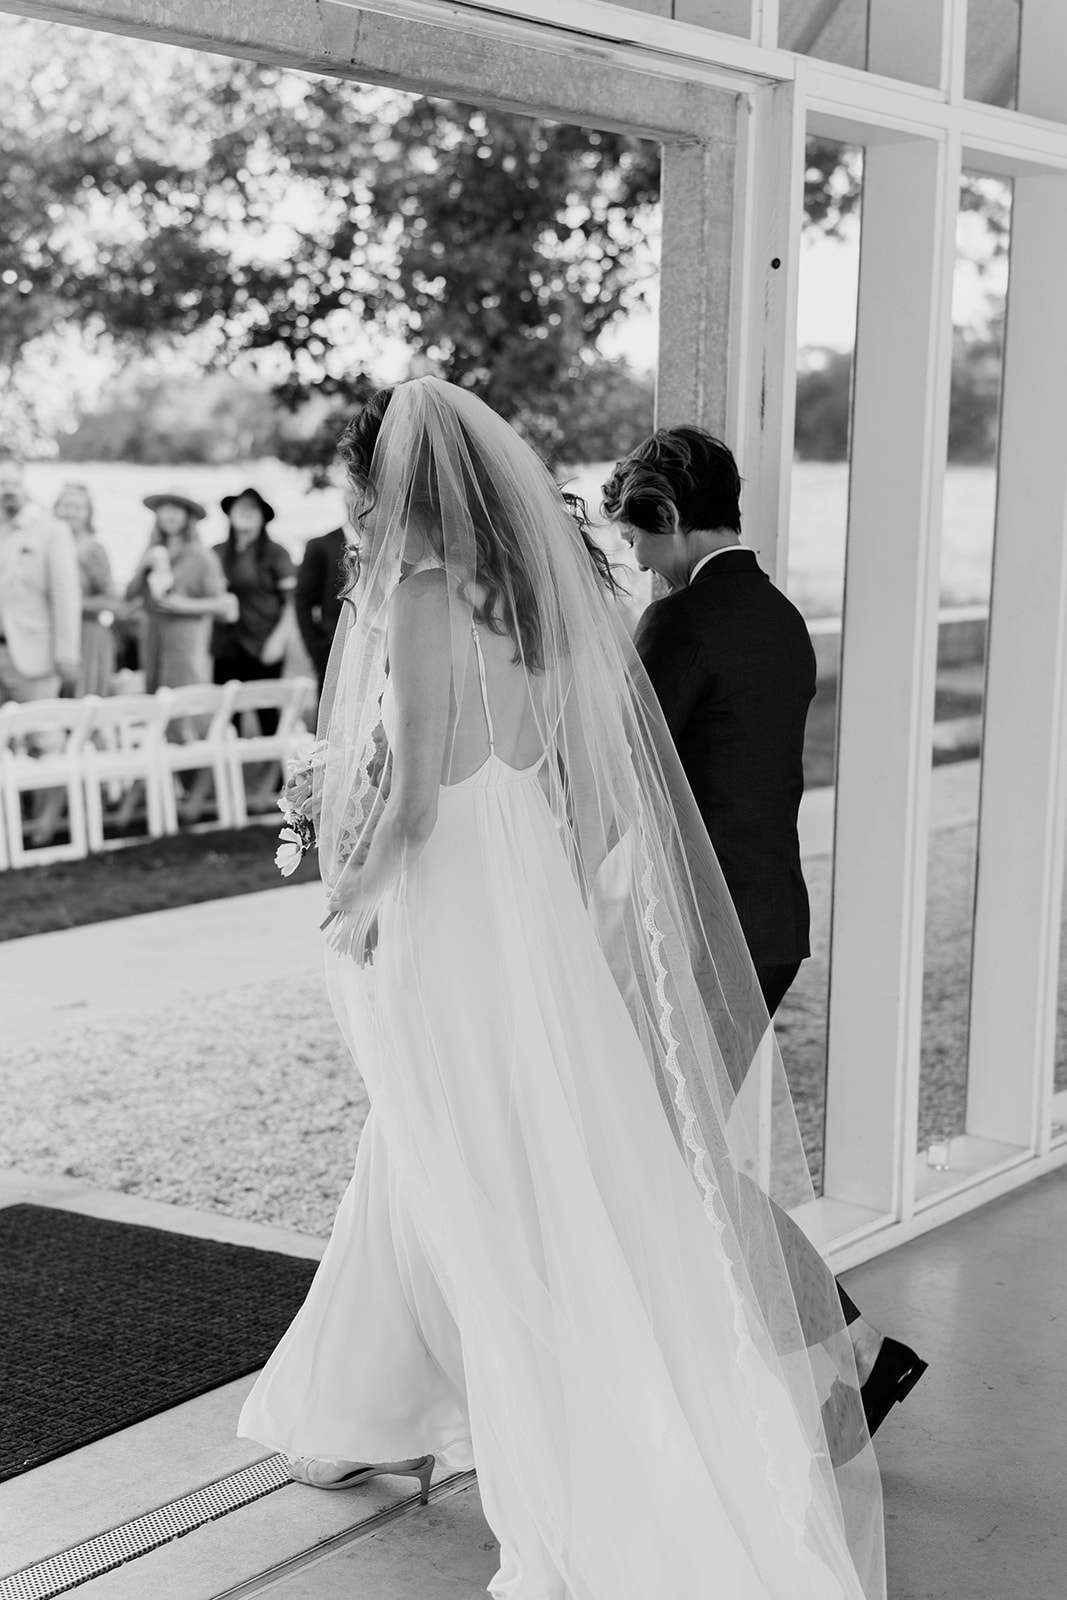 brides walking down processional aisle together